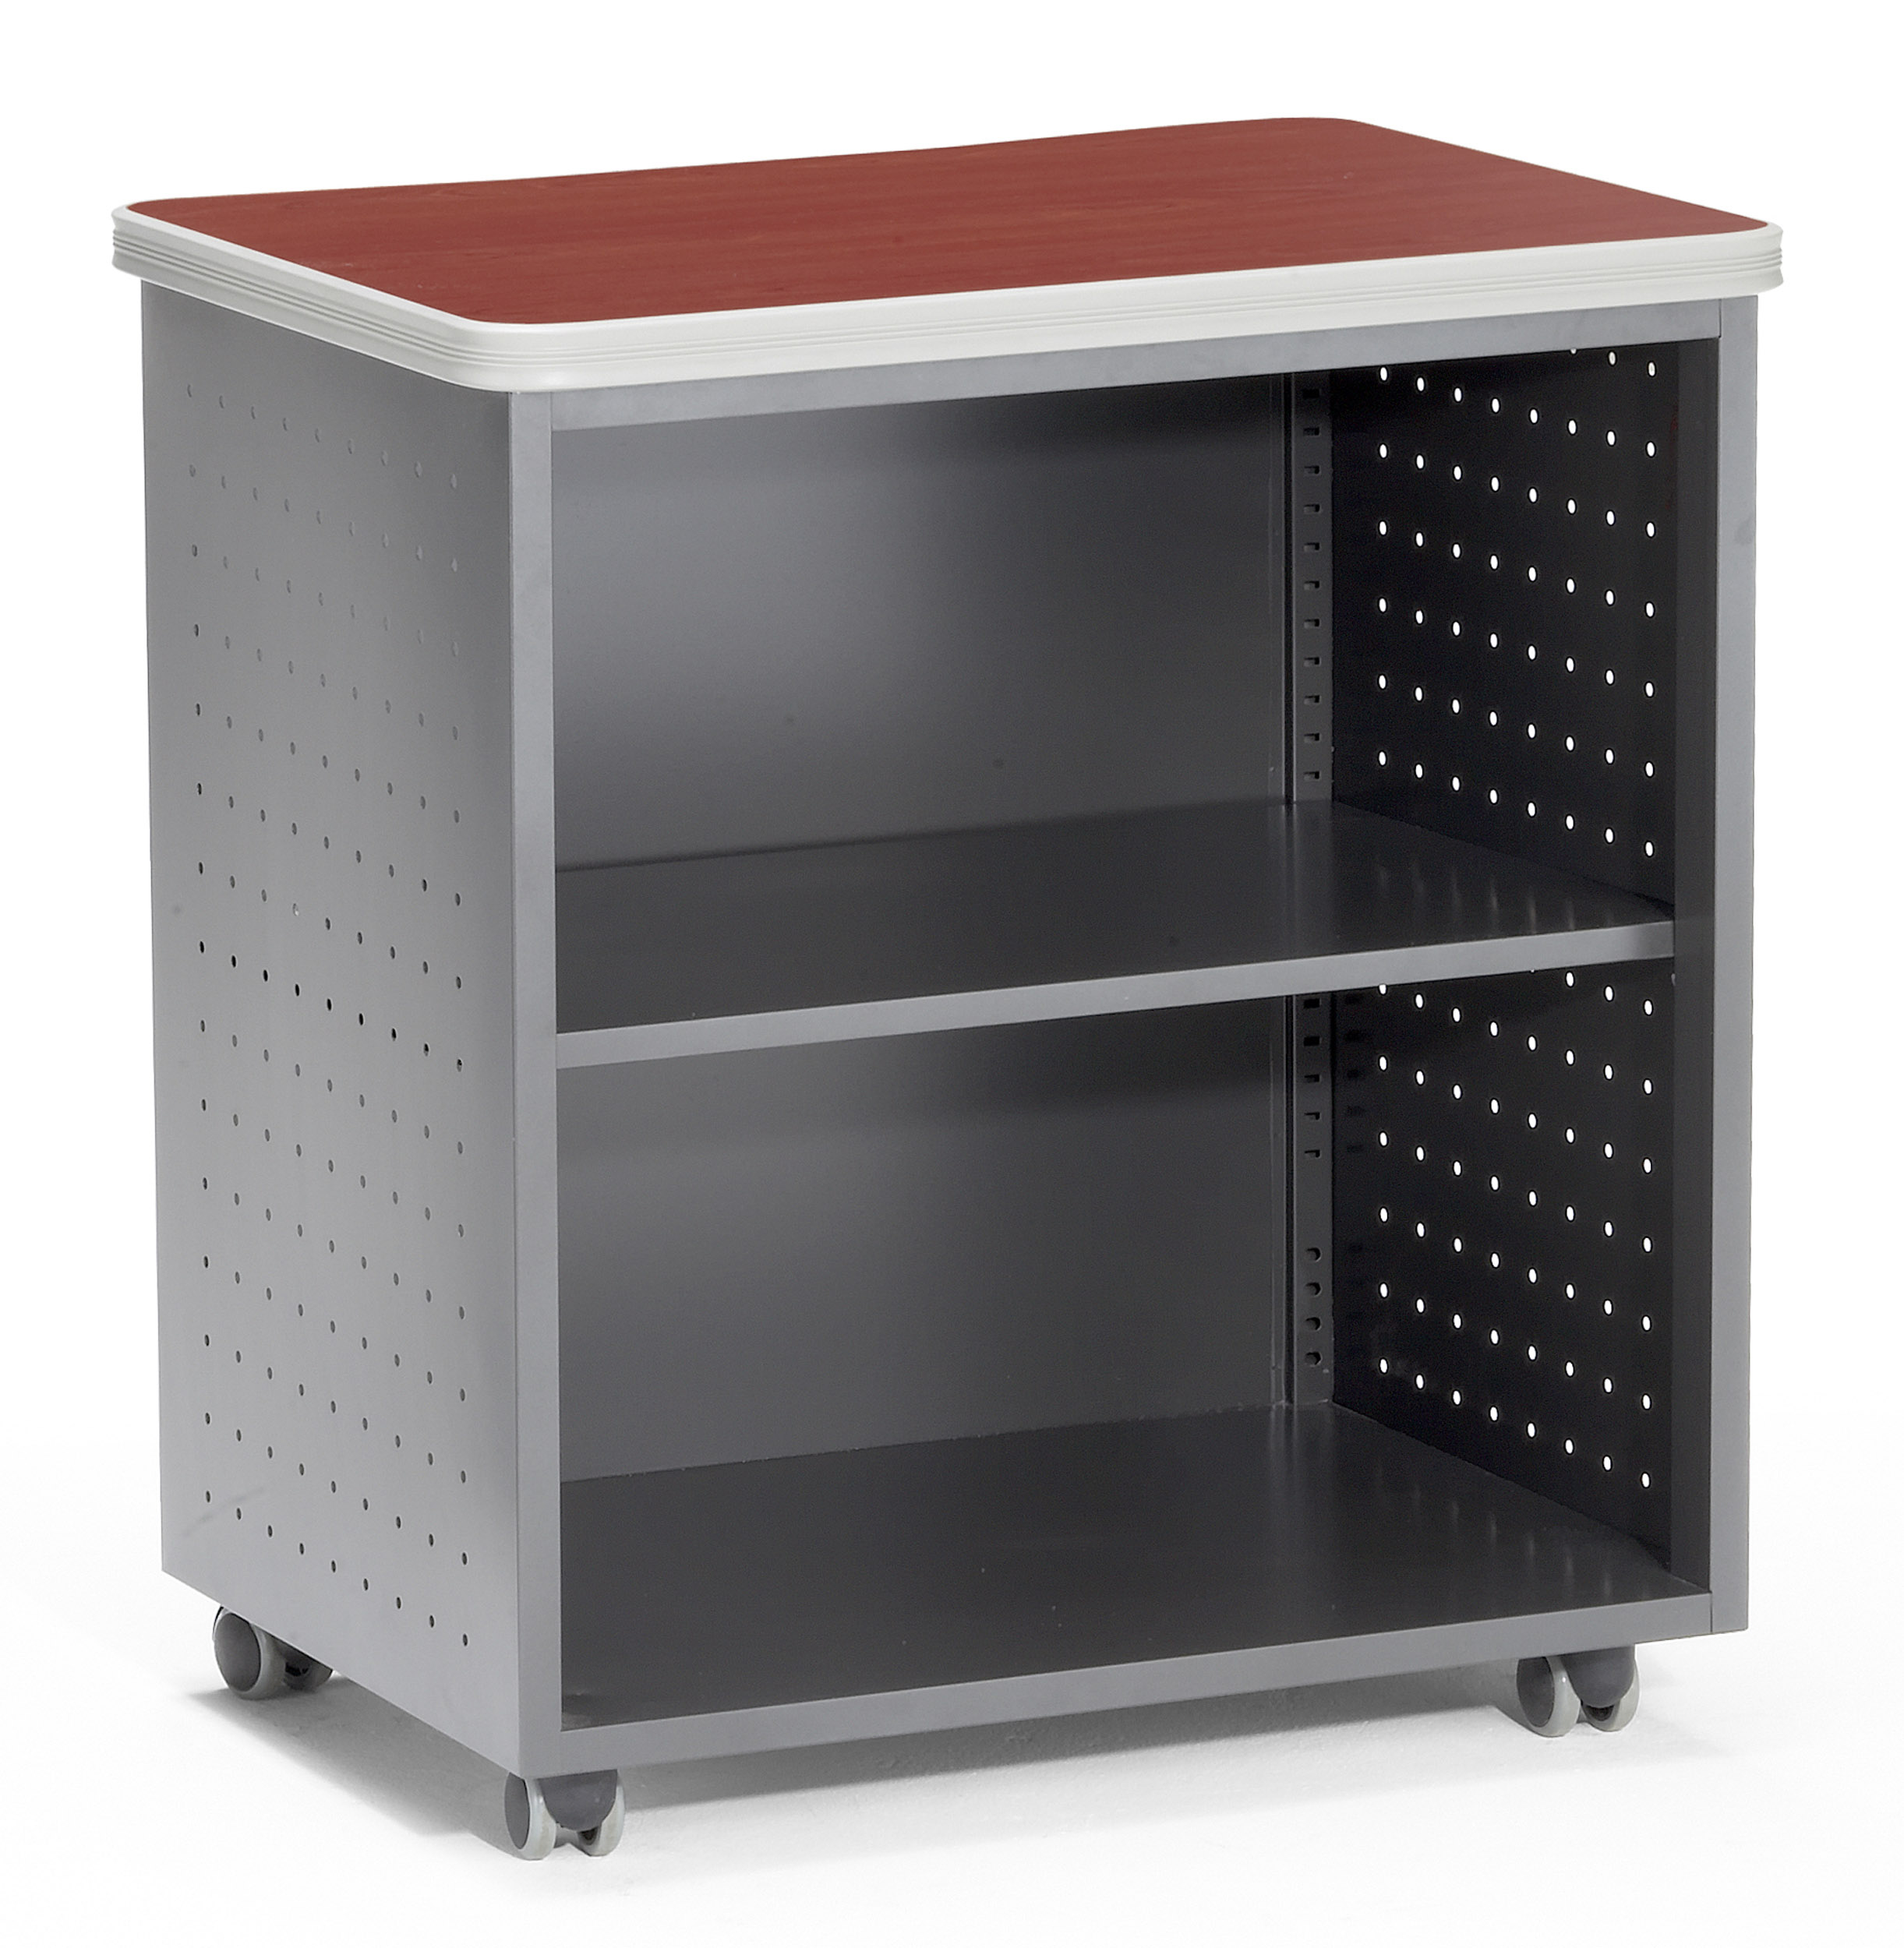 66745-CHY Office Furniture Mesa Series 27.50 Inch x 19.75 Inch Mobile Shelf CHERRY laminate top Wheeled Utility Table